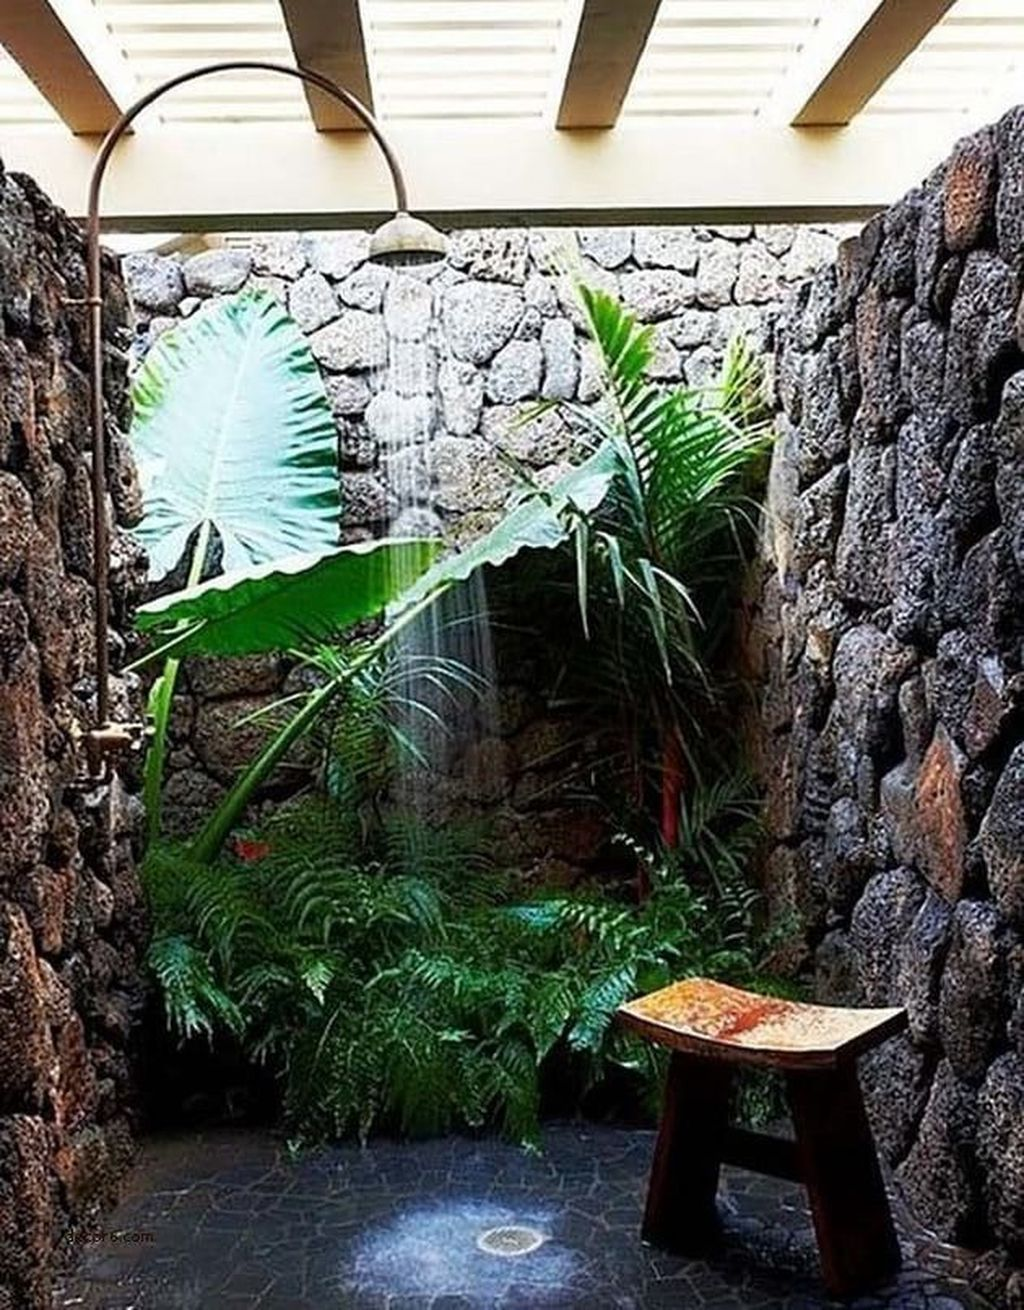 The Best Jungle Bathroom Decor Ideas To Get A Natural Impression 16